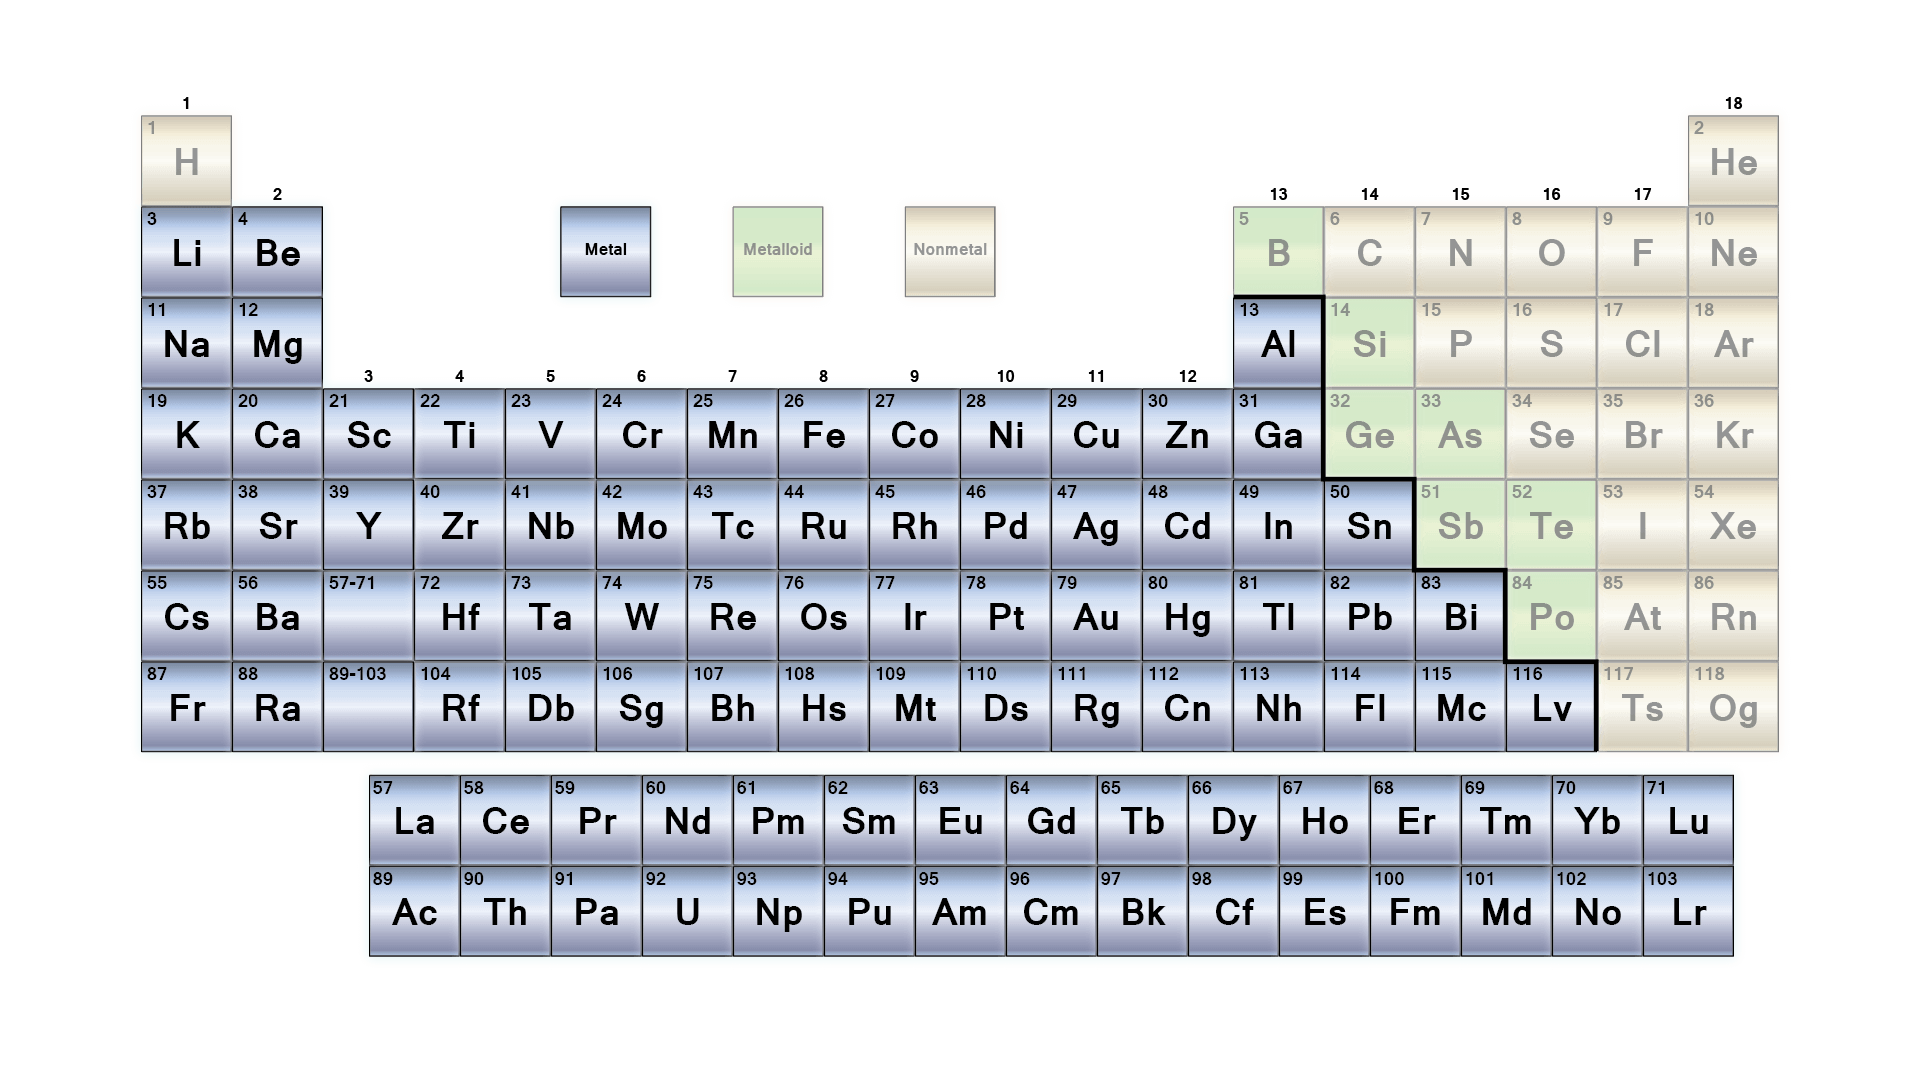 periodic table metals 2017 - Periodic Table Metals